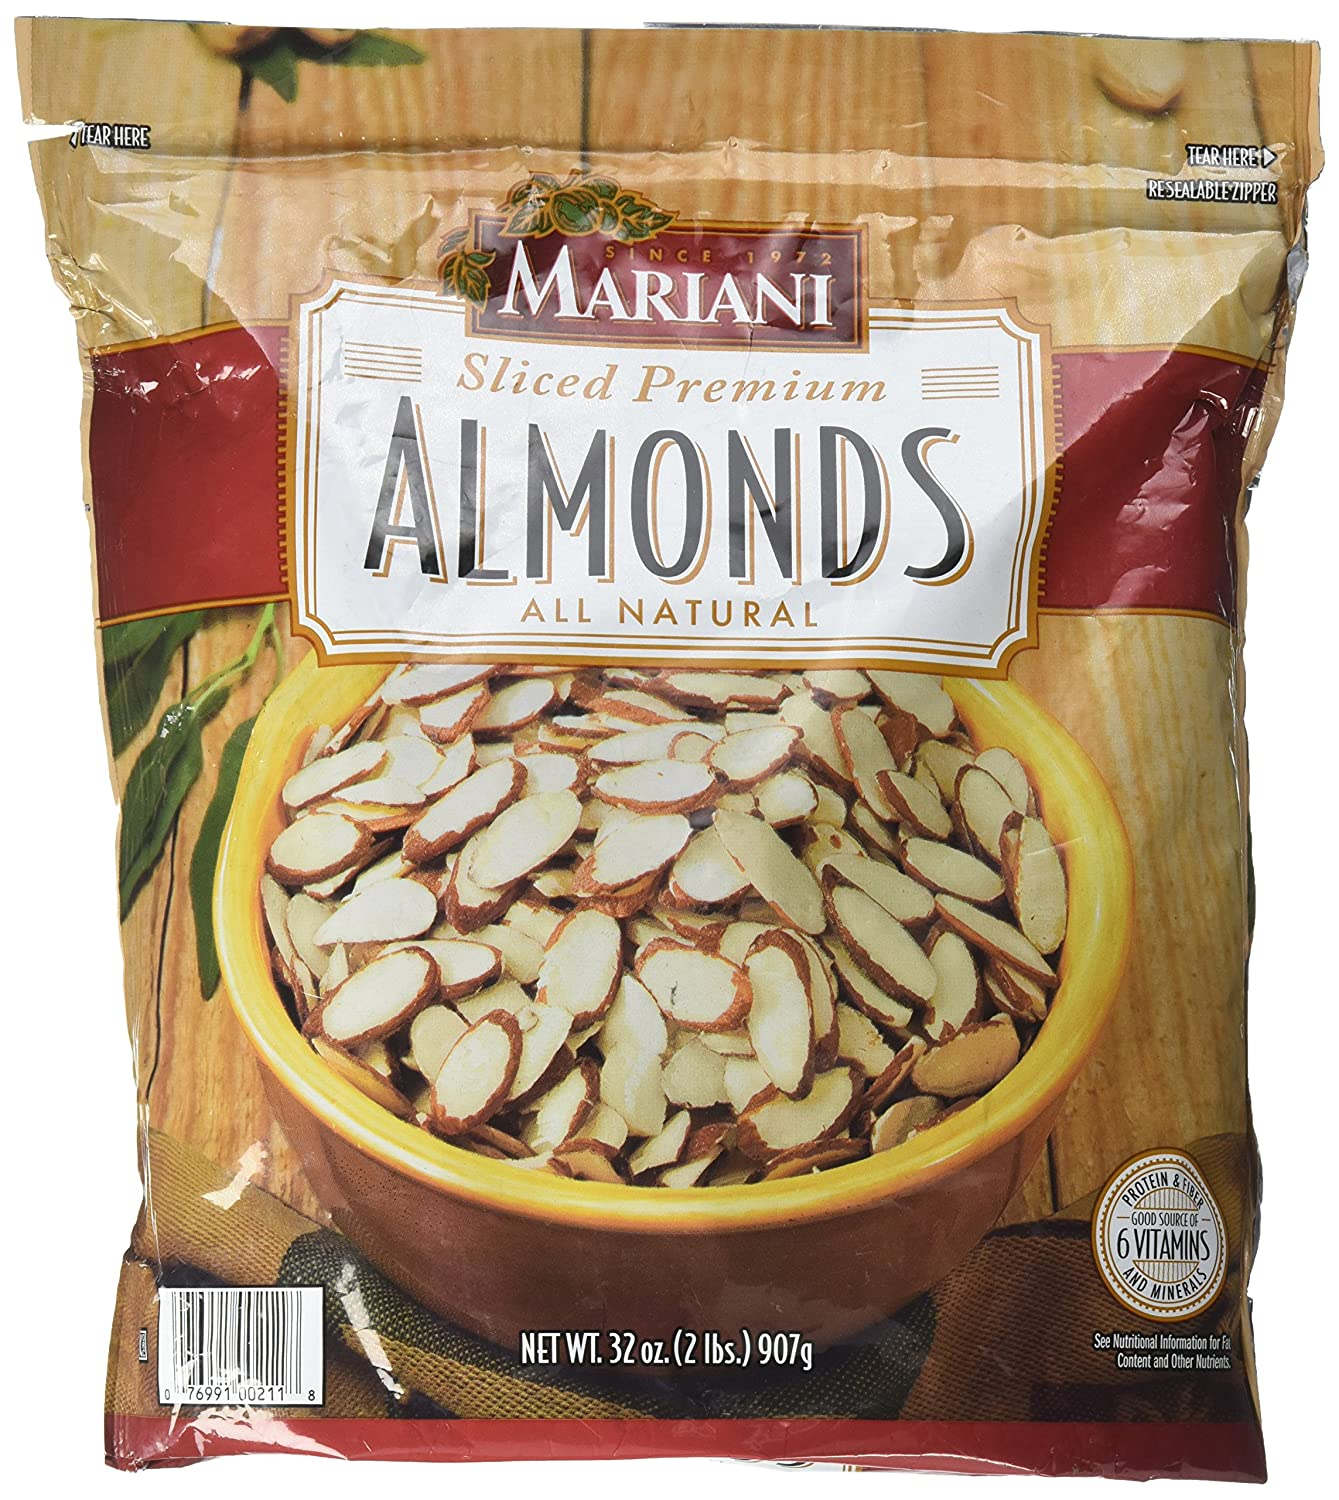 Mariani Sliced Premium Almonds All Natural, 2lbs (2 Packs)